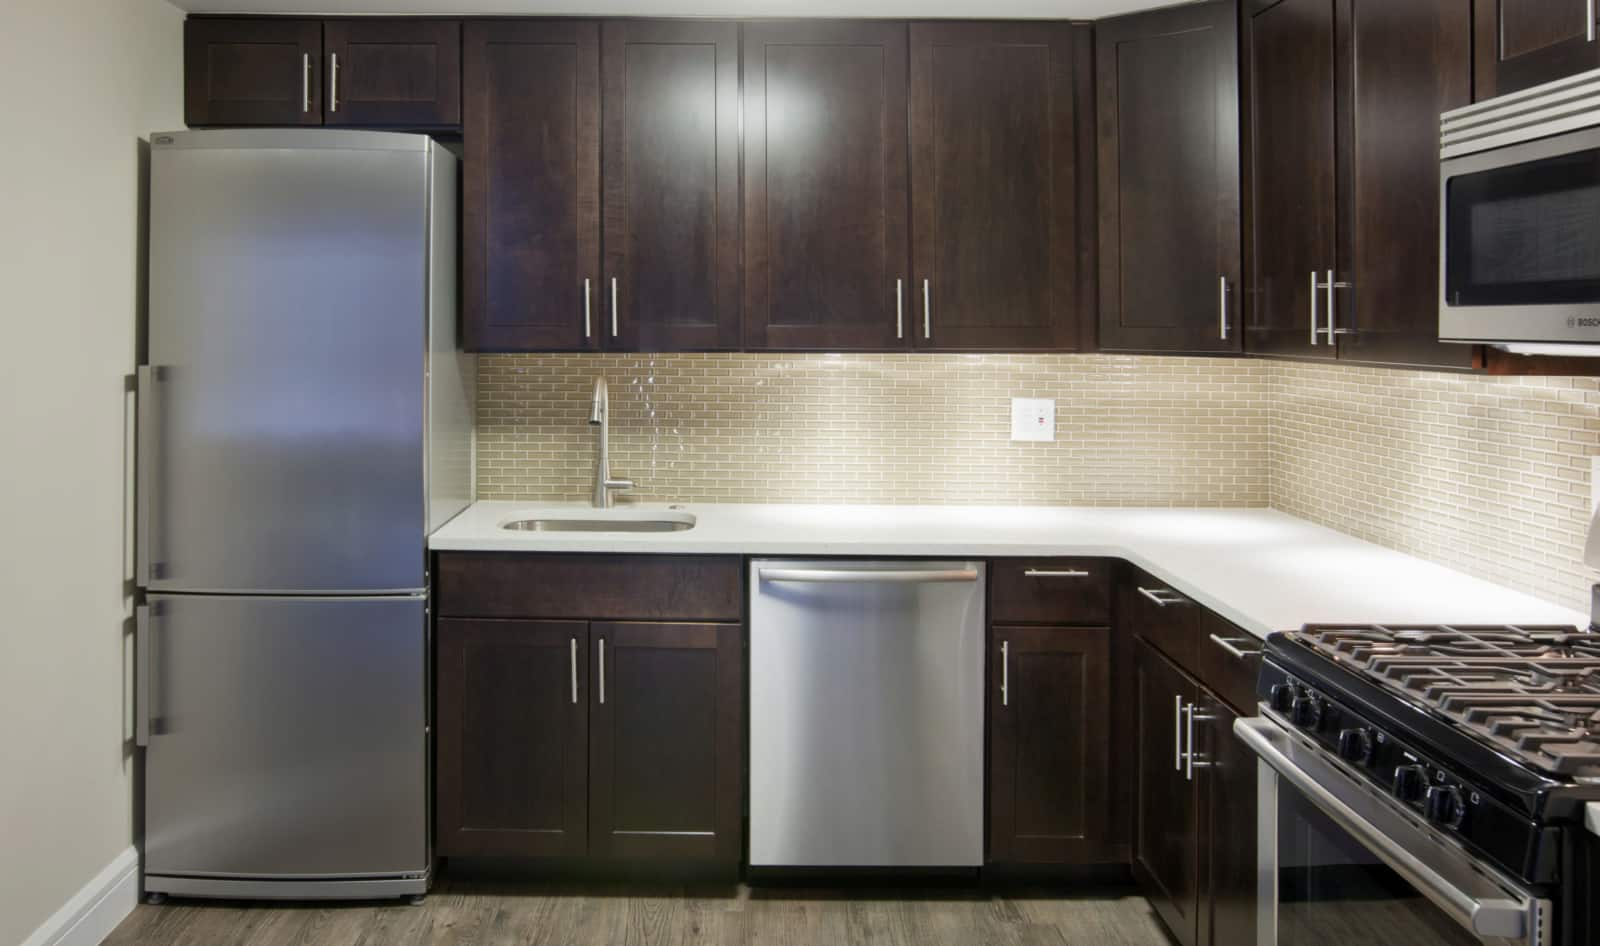 Interior of apartment kitchen with stainless steel appliances, white countertops and dark cabinets.